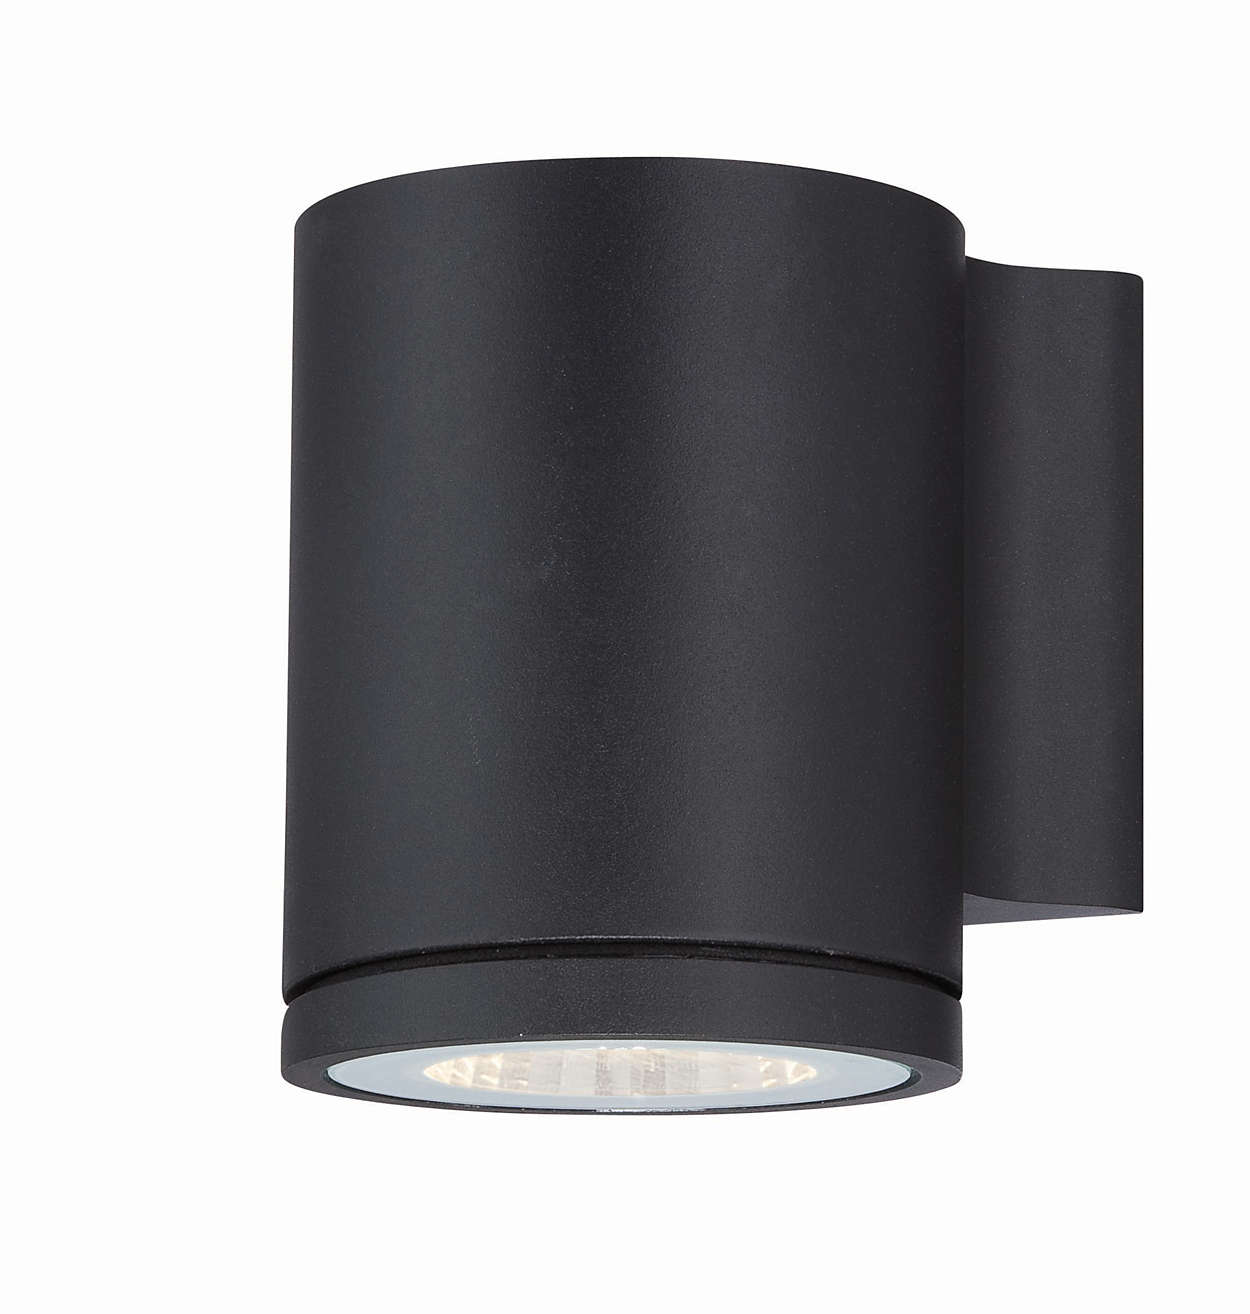 wall light fl  forecast - download image